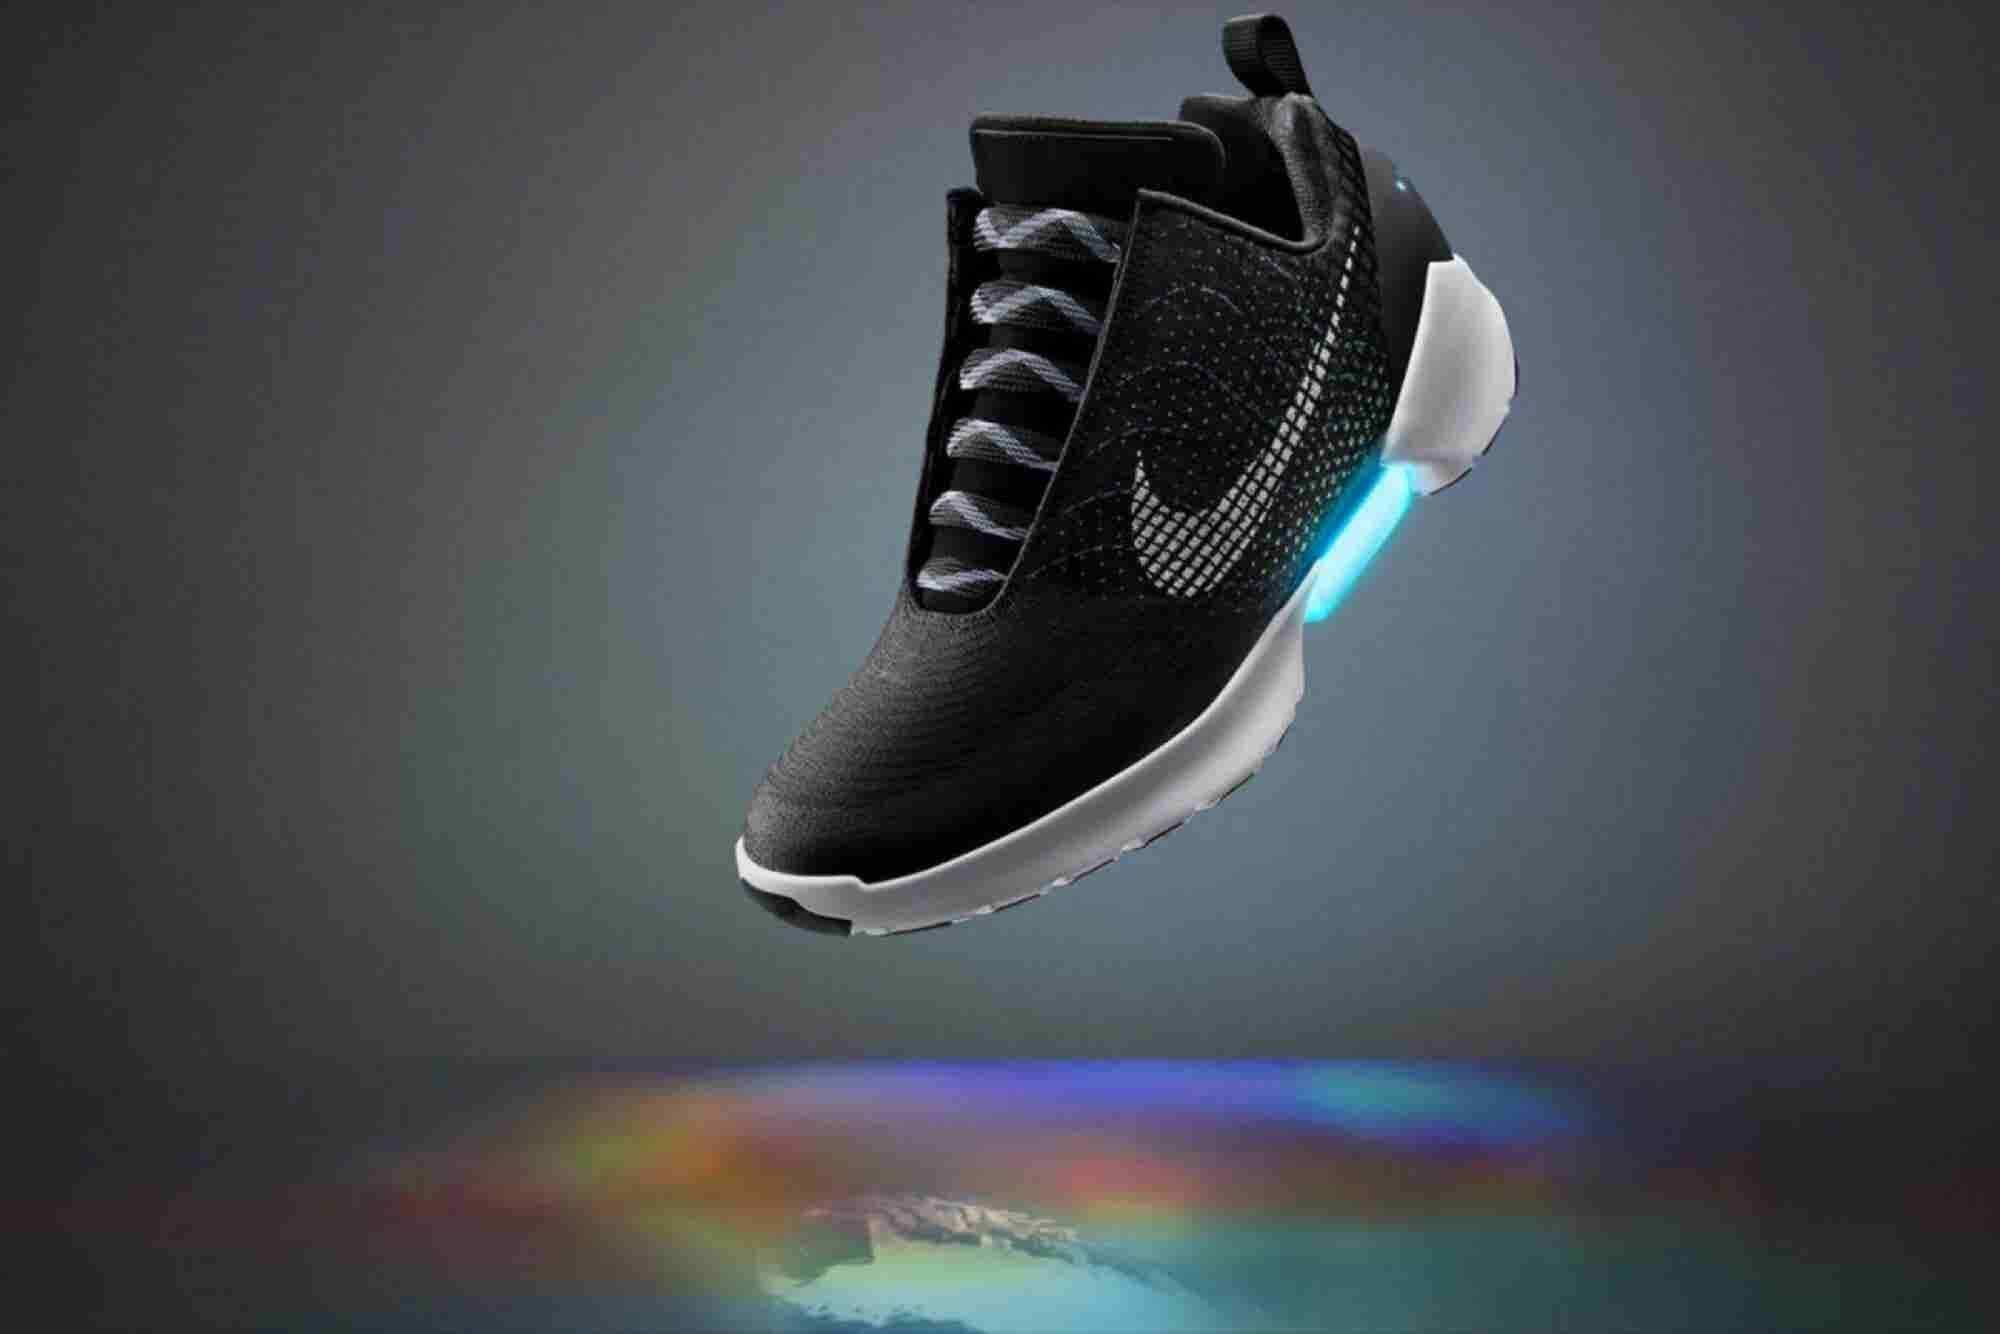 We Finally Know When We Can Get Our Hands on Nike's Self-Lacing Sneake...